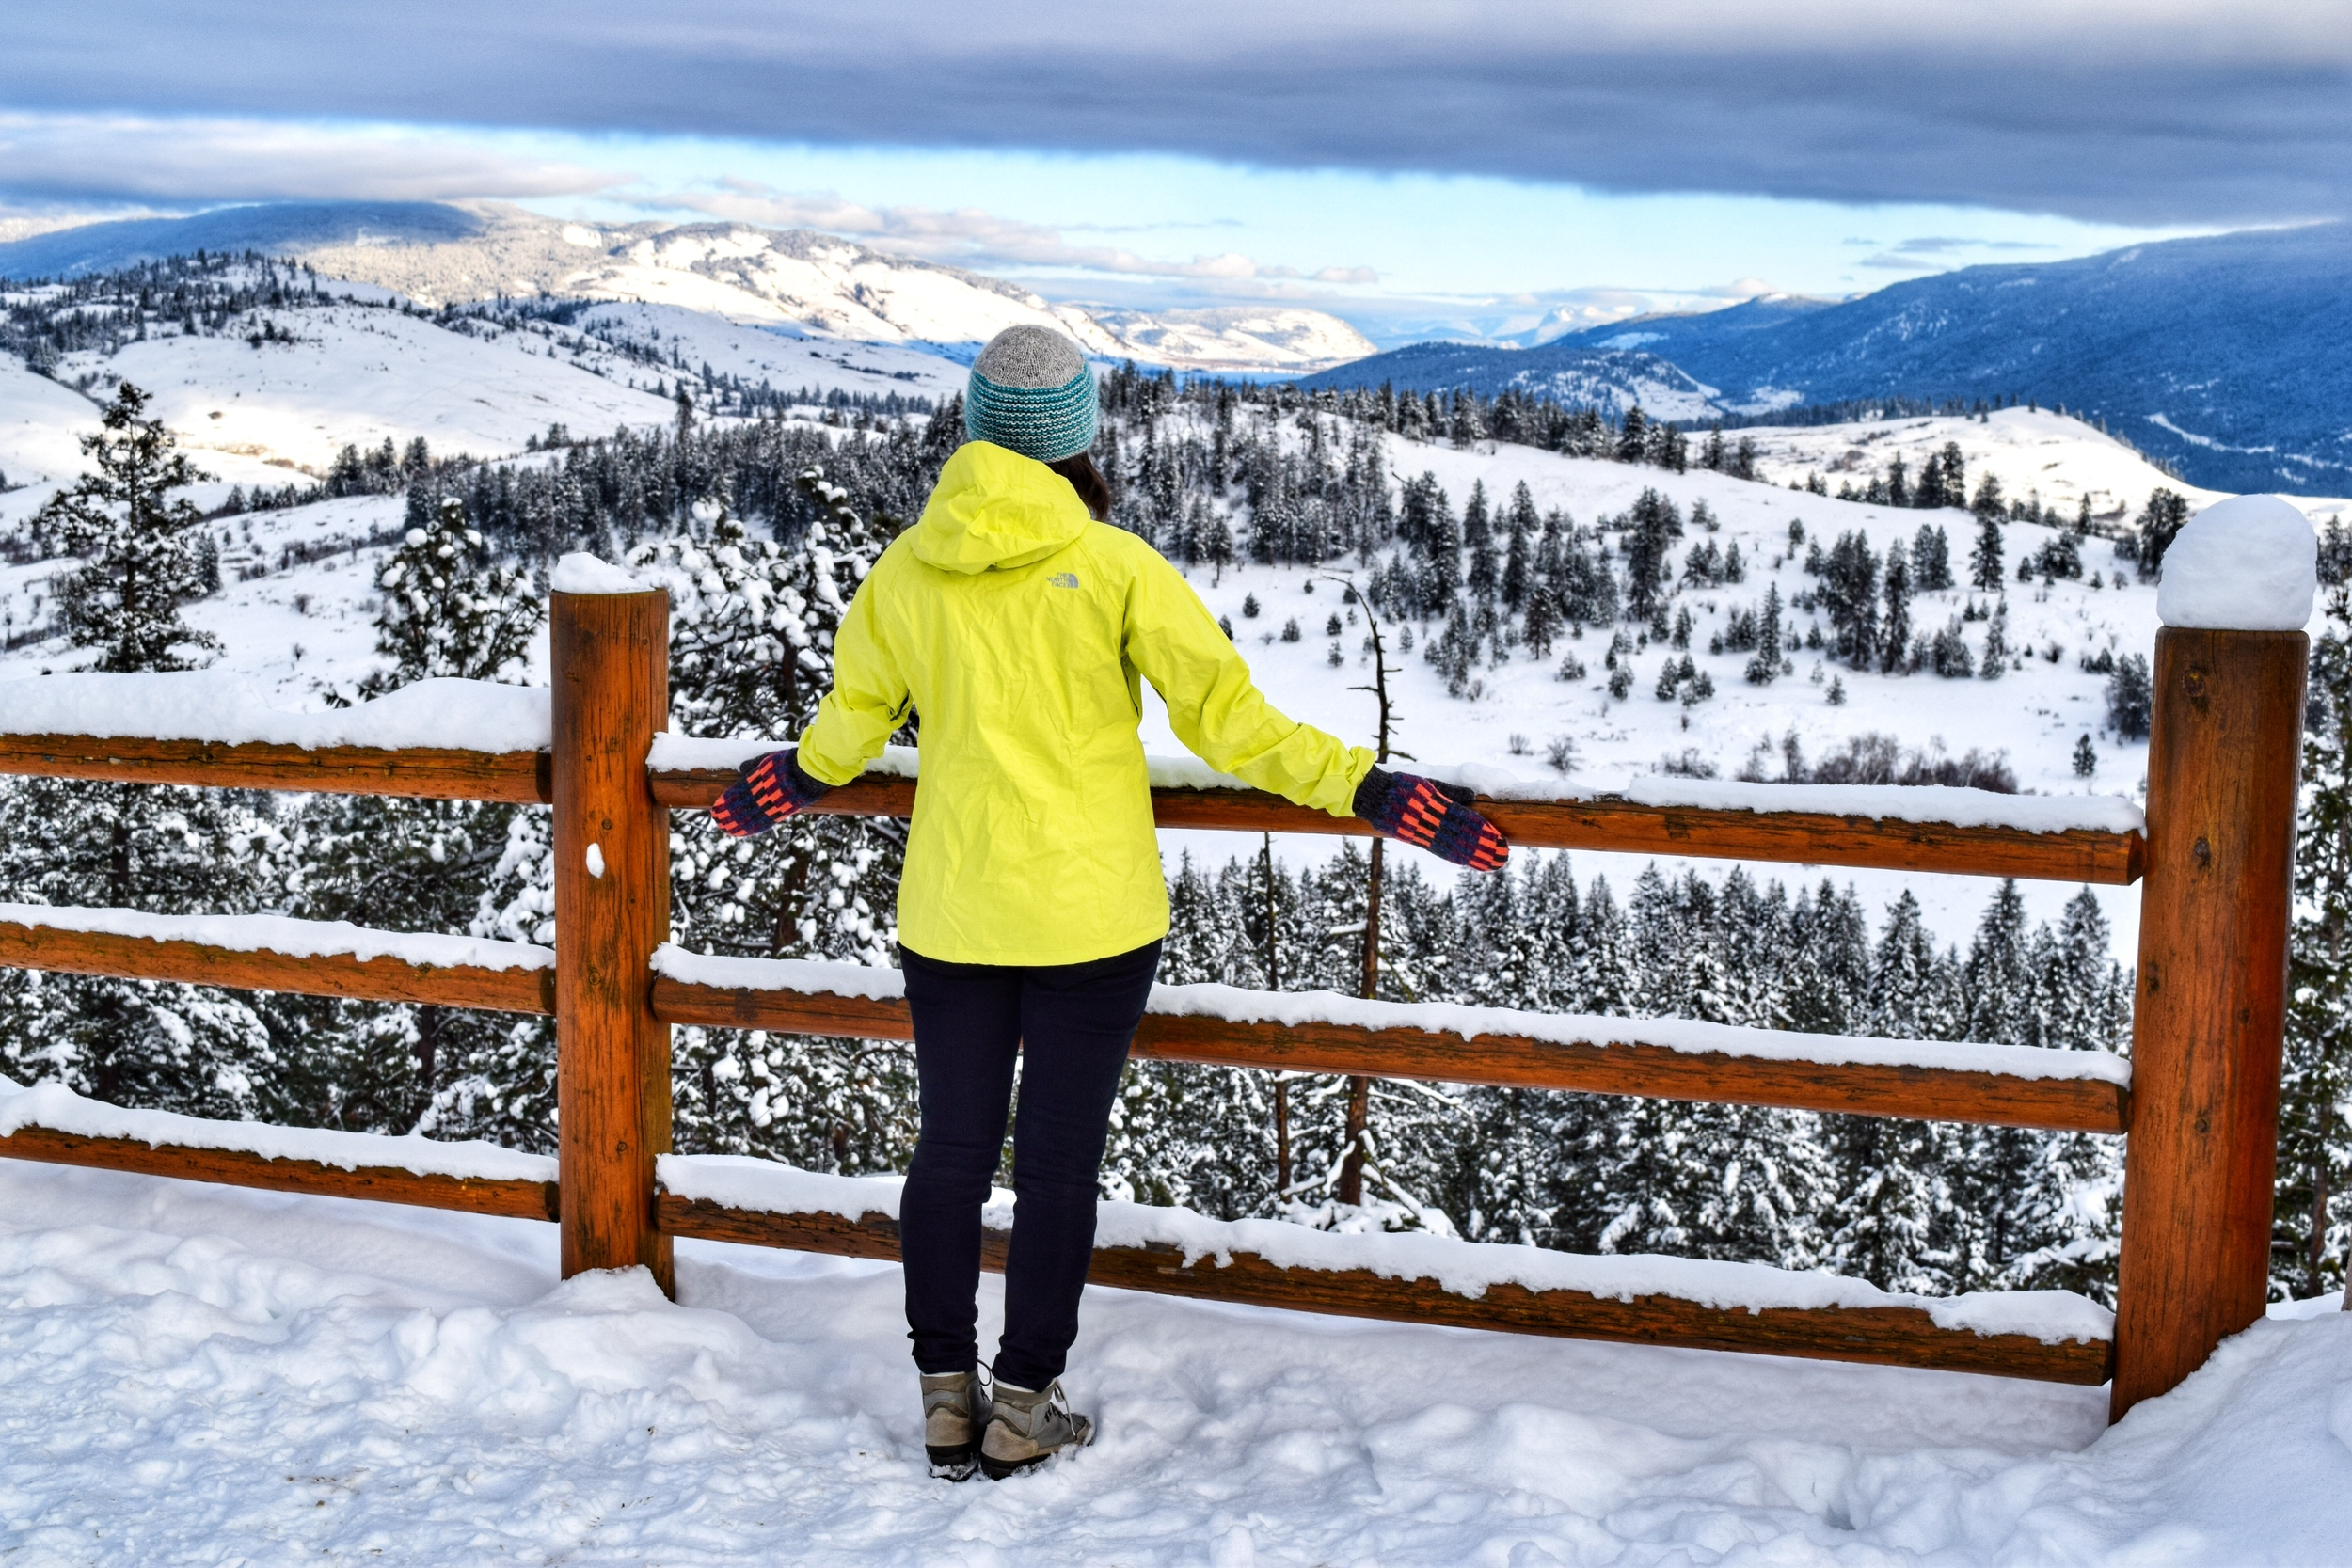 23 WINTER PHOTOS THAT WILL INSPIRE YOU TO VISIT THE OKANAGAN VALLEY